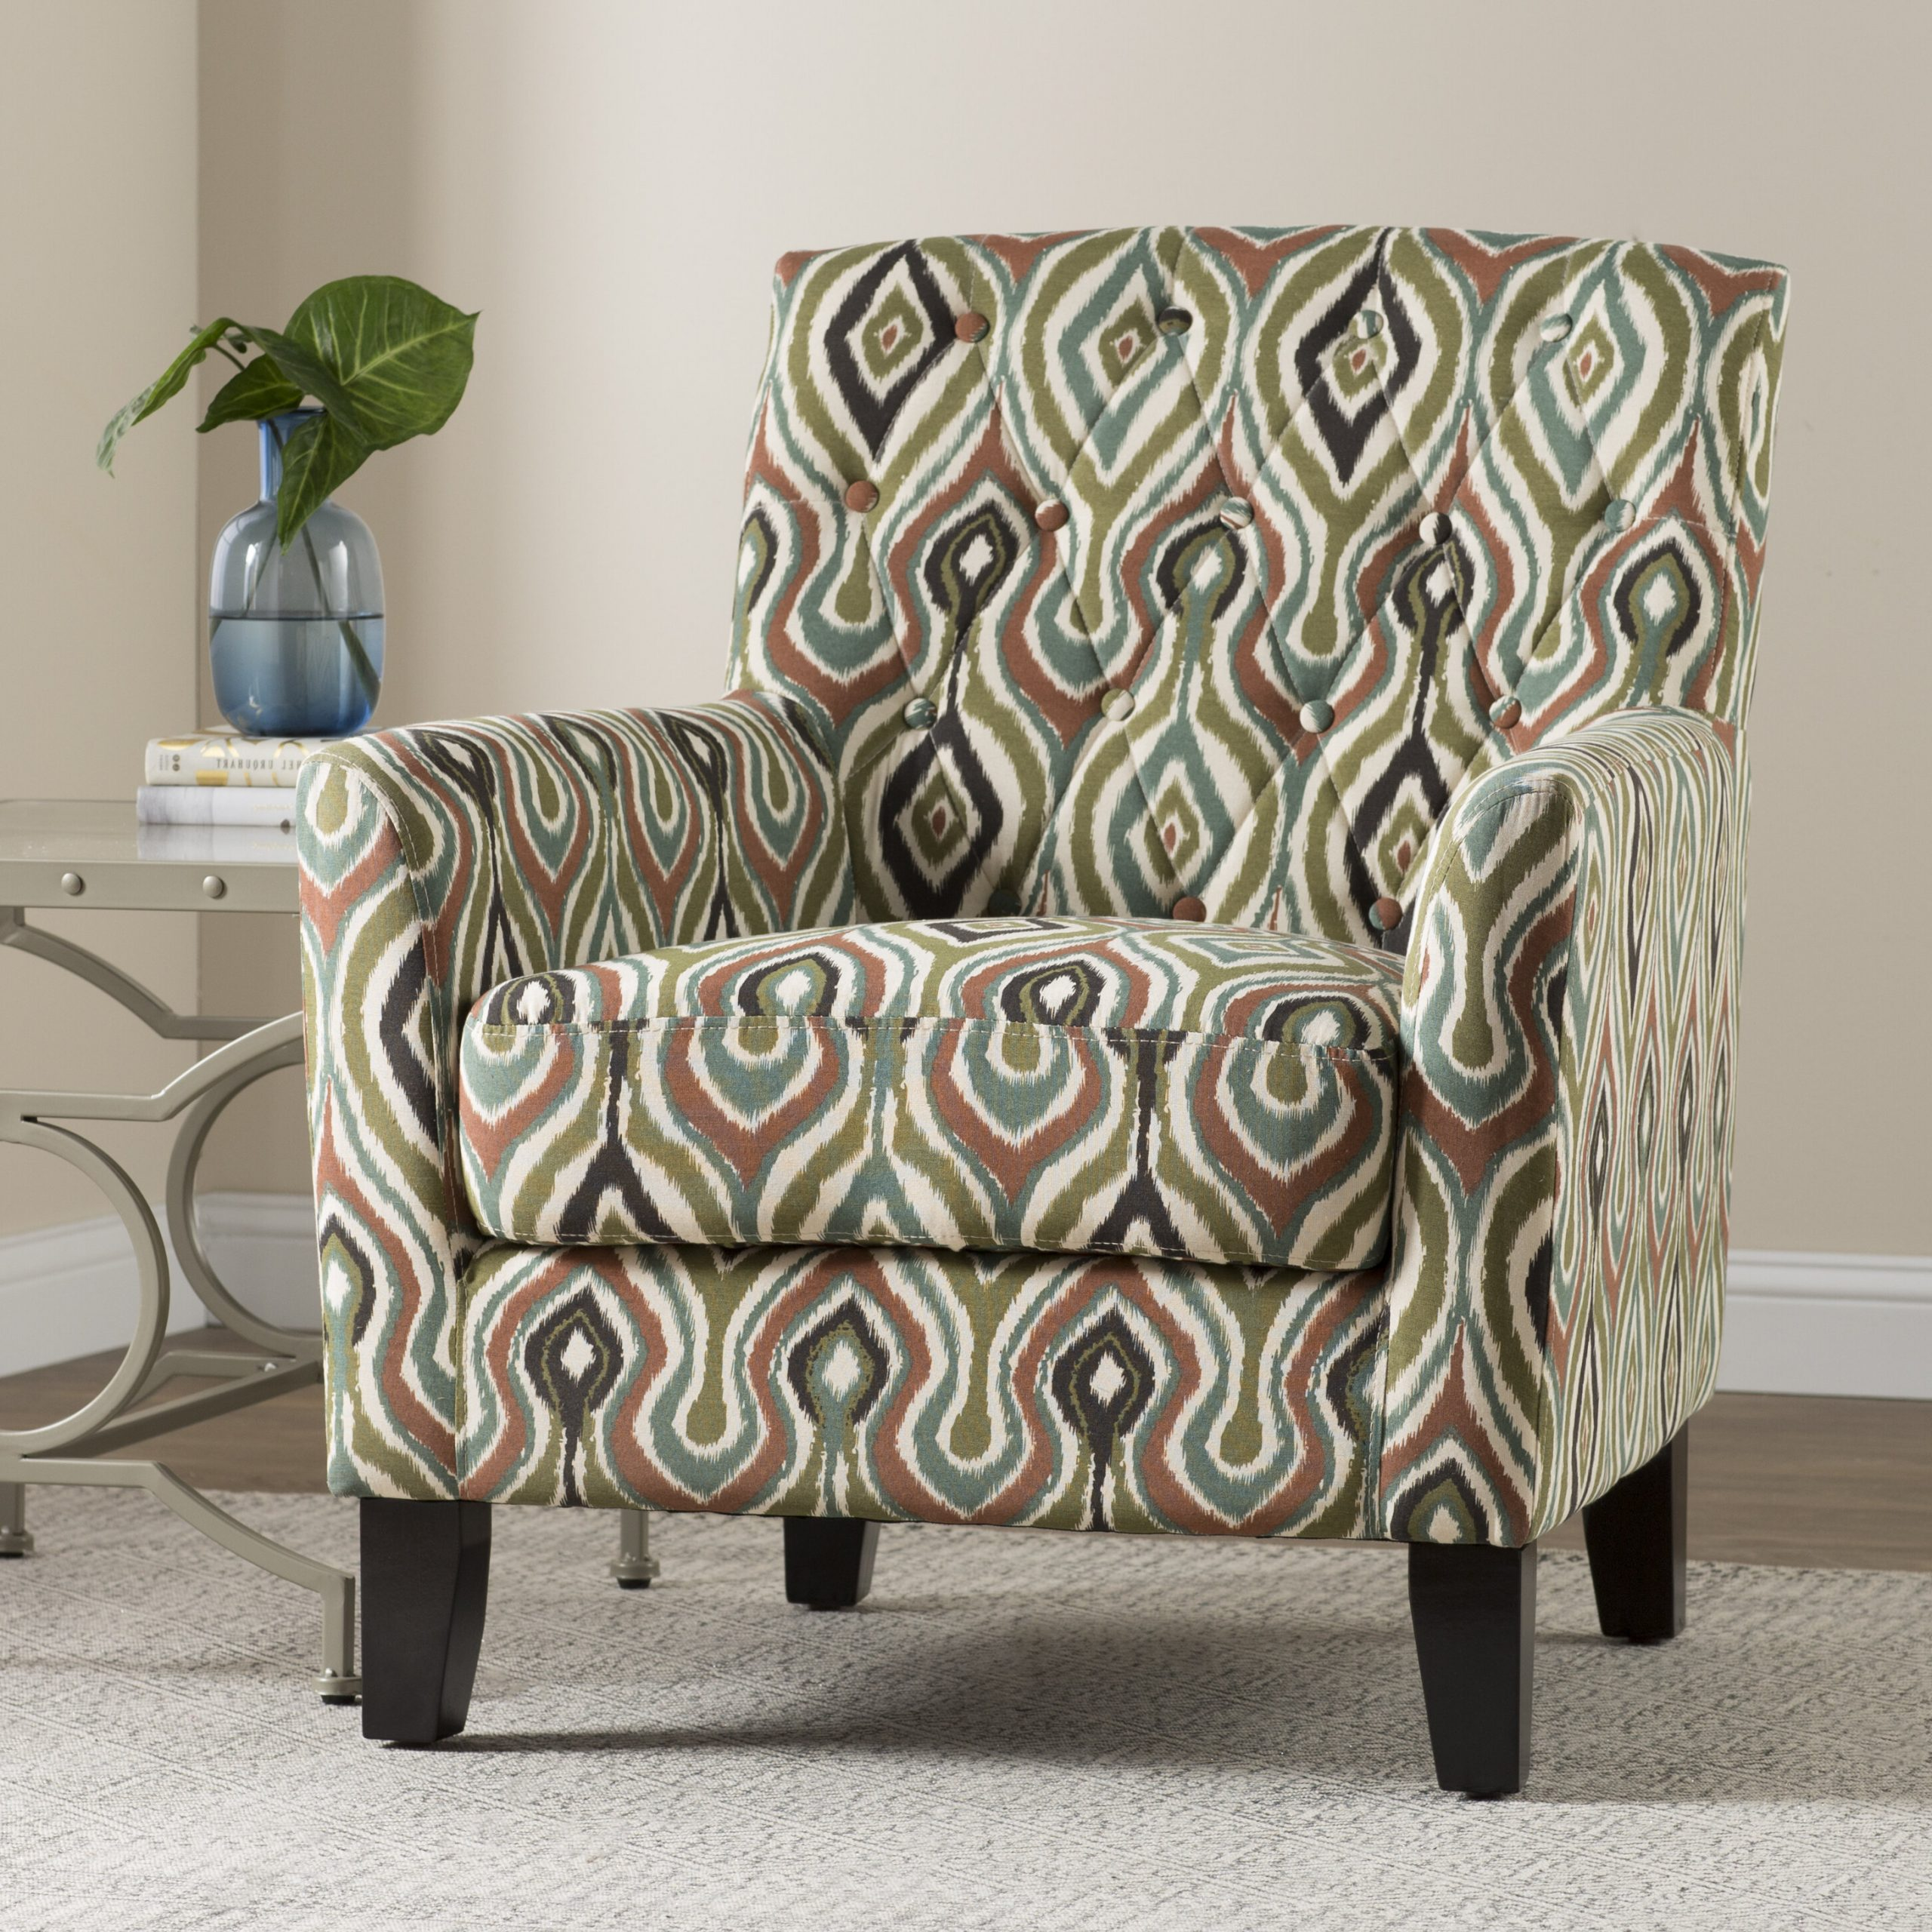 Popel Armchairs Within Best And Newest Popel Armchair (View 2 of 20)